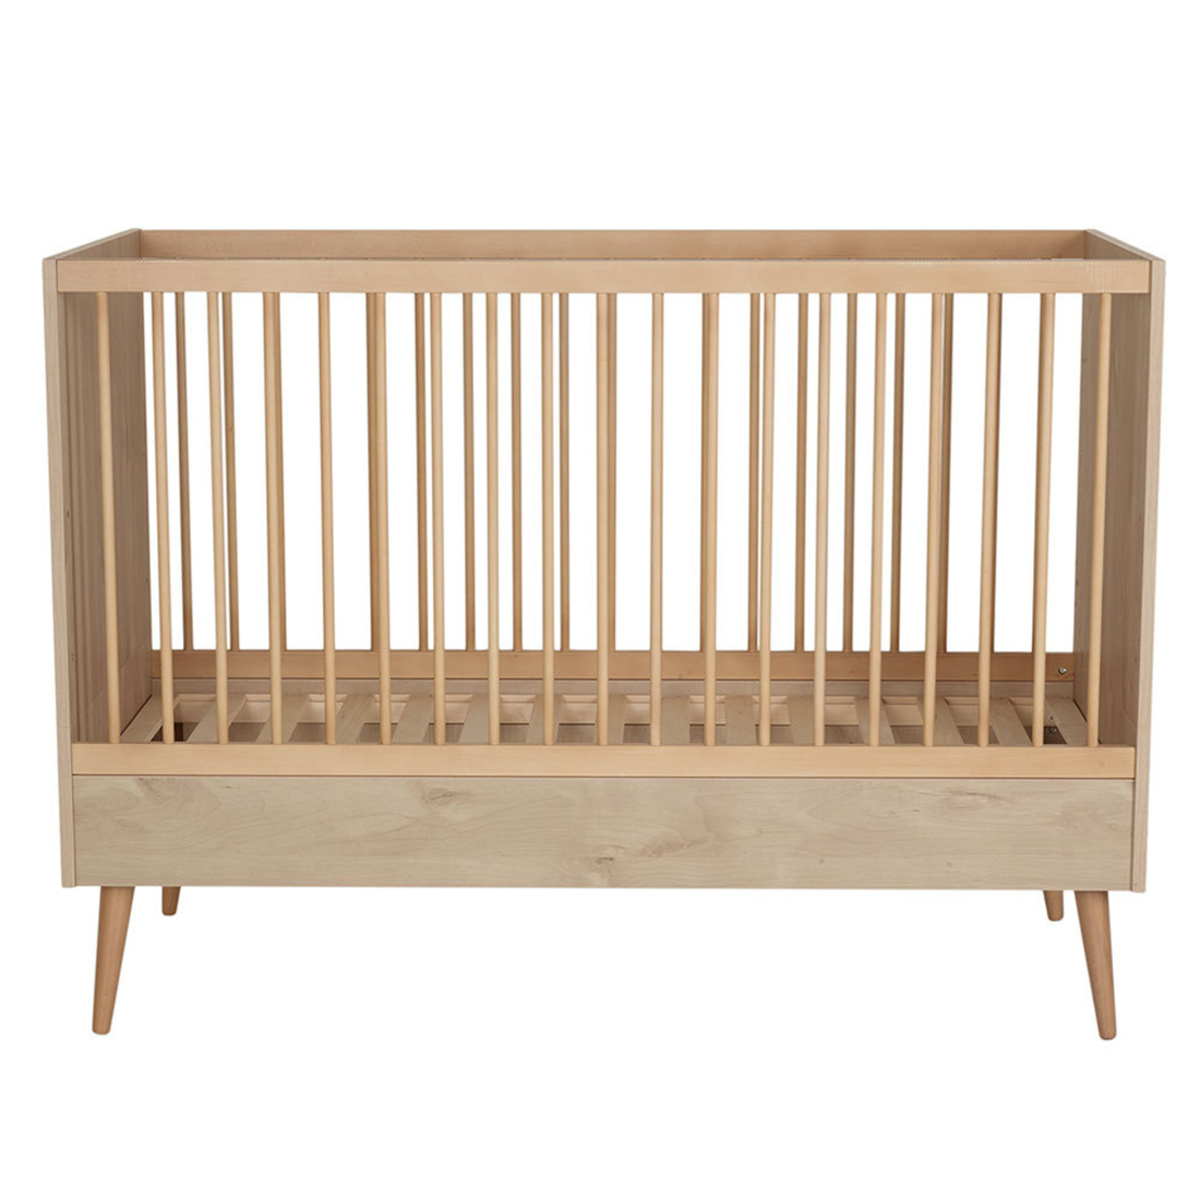 Lit bébé Lit Bébé Evolutif Cocon Natural Oak - 70 x 140 cm Lit Bébé Evolutif Cocon Natural Oak - 70 x 140 cm